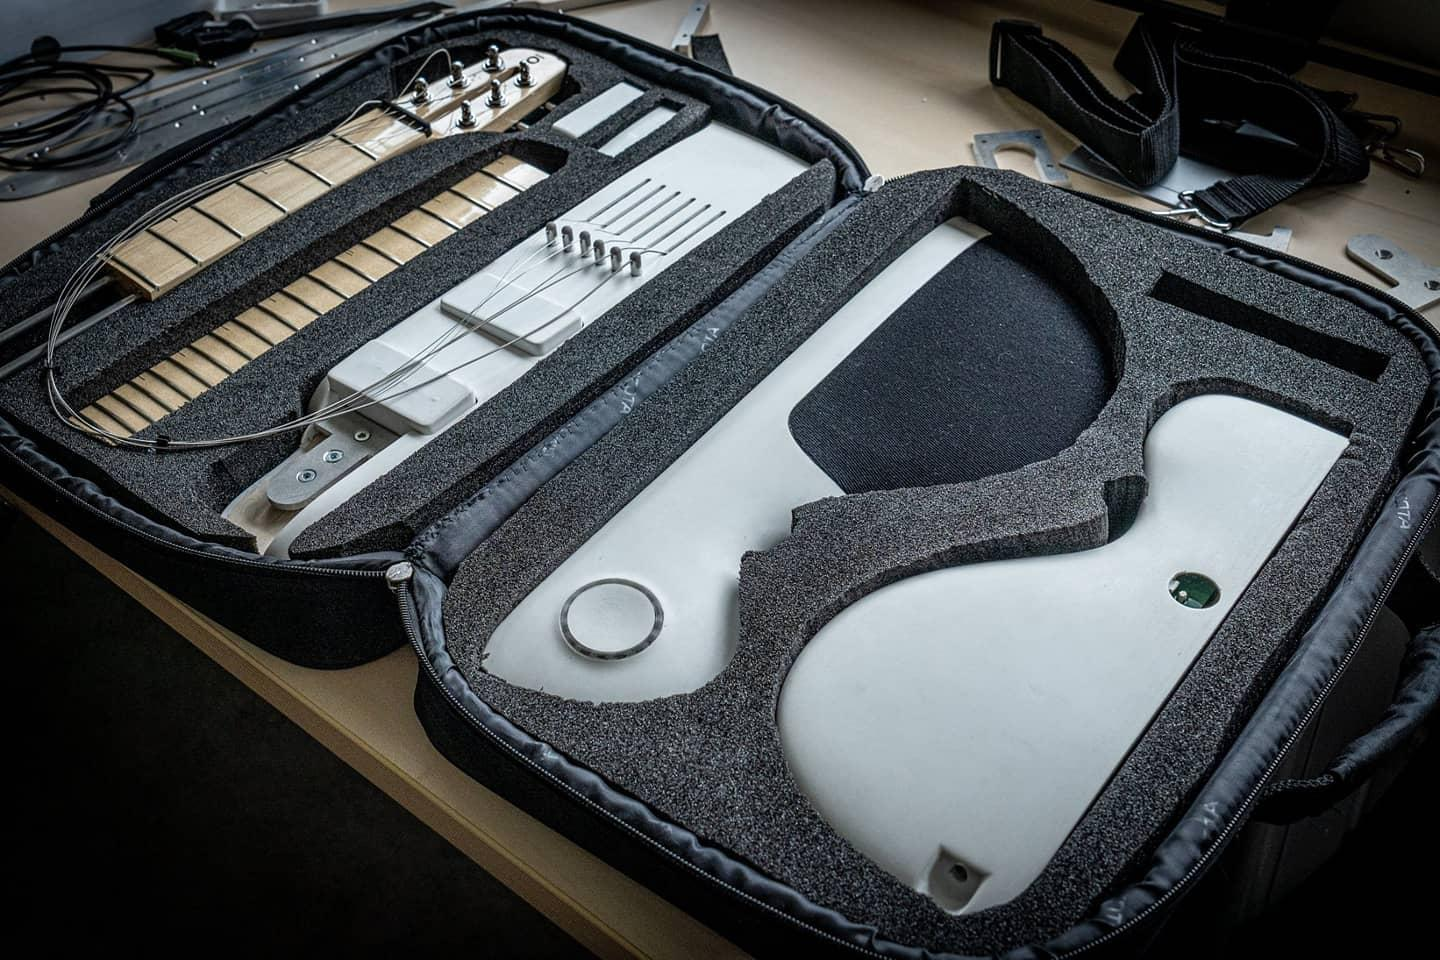 The Slite travel guitar breaks down into five parts for transport in a case about the same size as a laptop bag